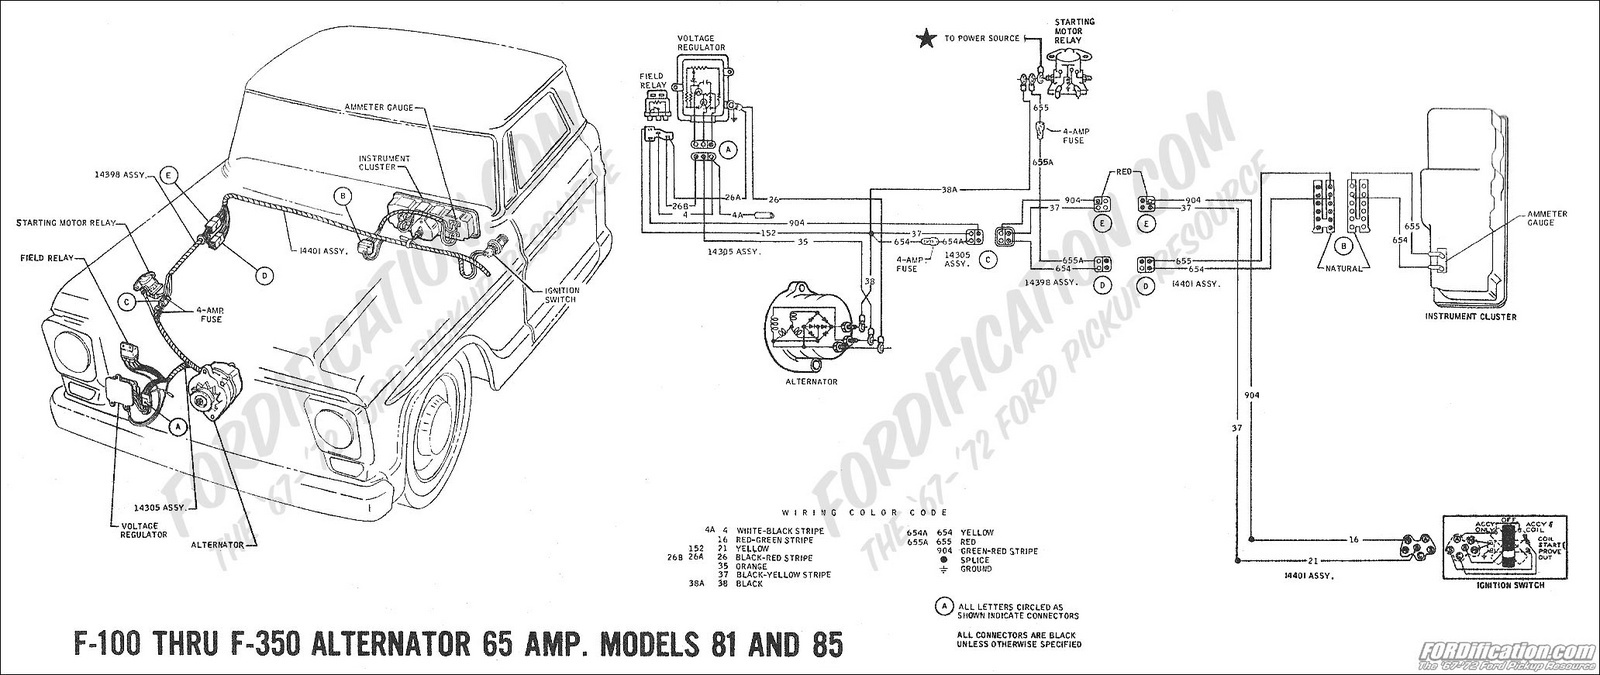 [SCHEMATICS_4NL]  40419E9A Cub Cadet Gt 2042 Tractor Wiring Diagram | Manual Book and Wiring  Schematic | Cub Cadet Gt 2042 Tractor Wiring Diagram |  | Manual Book and Wiring Schematic